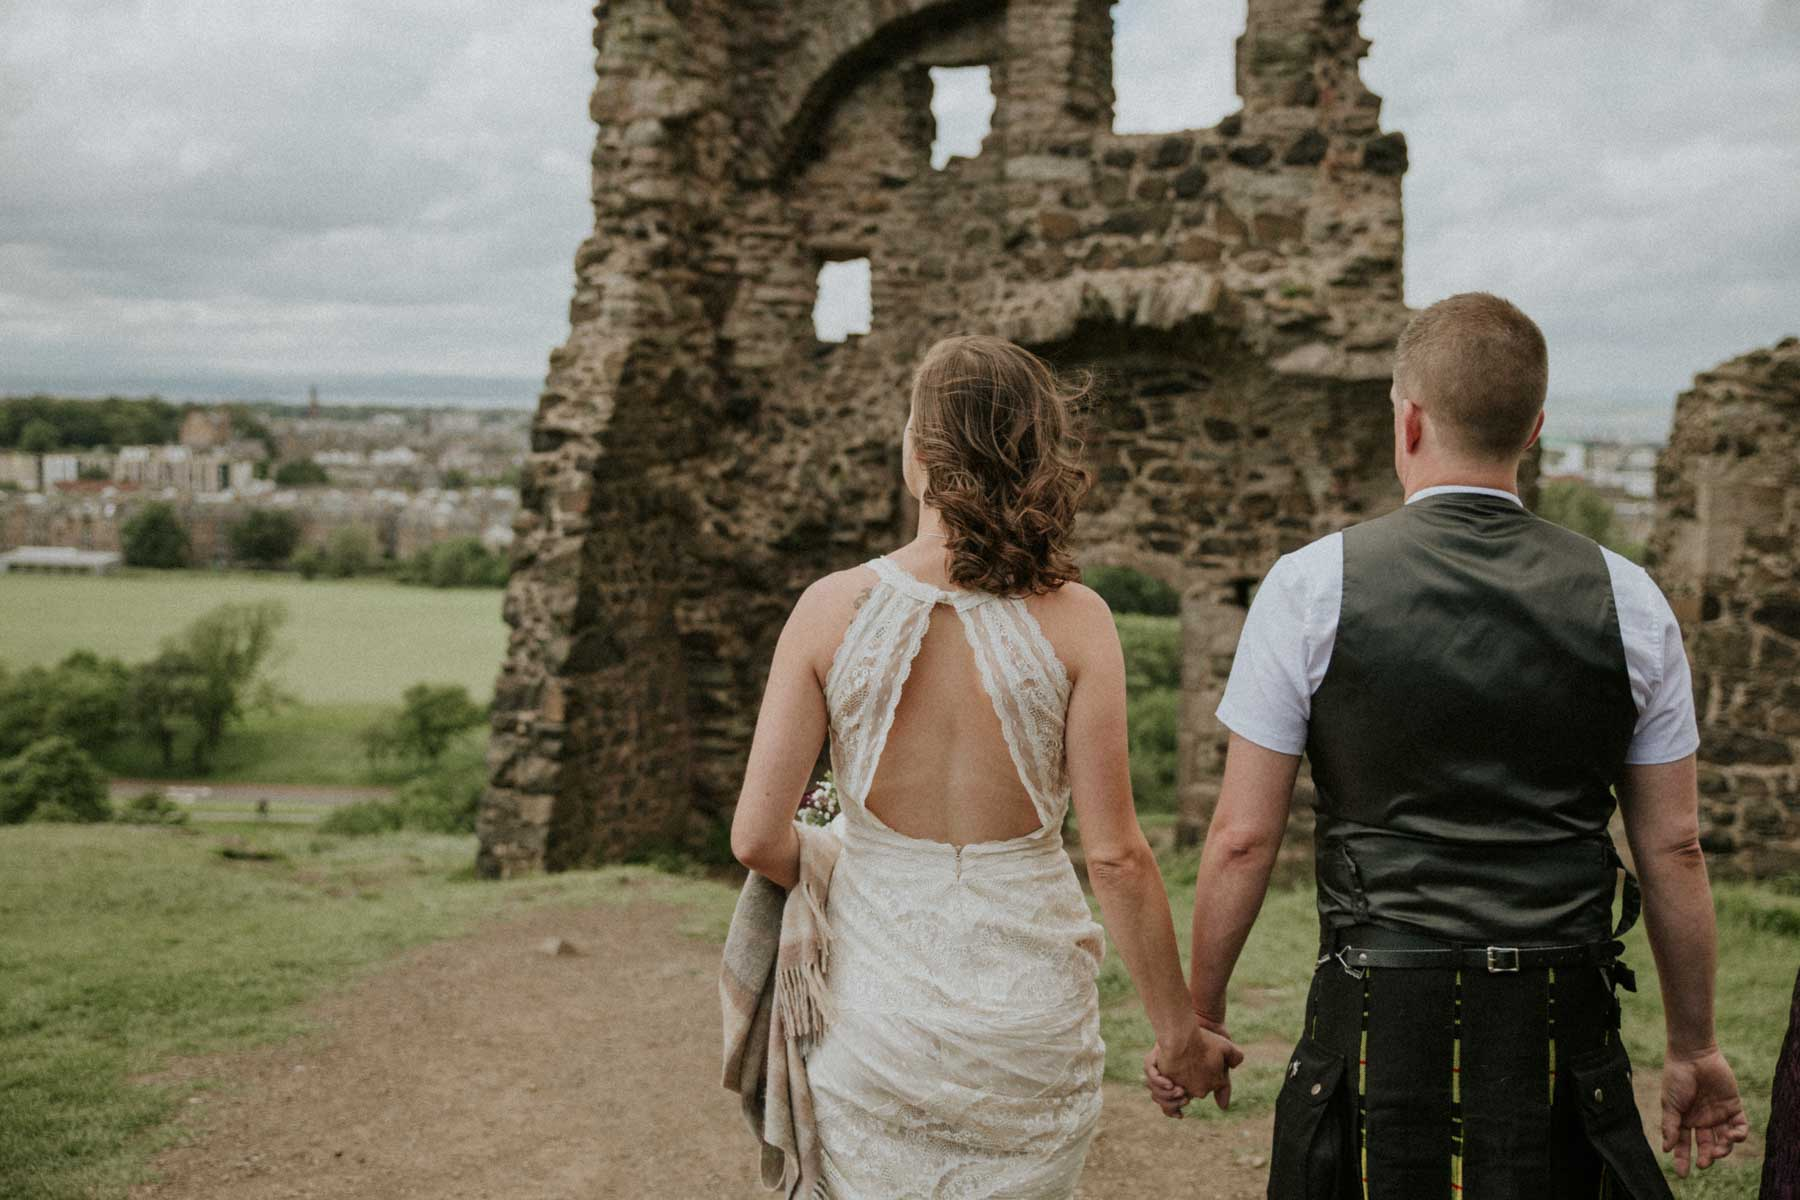 Edinburgh Elopement | Intimate Destination Wedding | Holyrood Park St Anthony Chapel Elopement